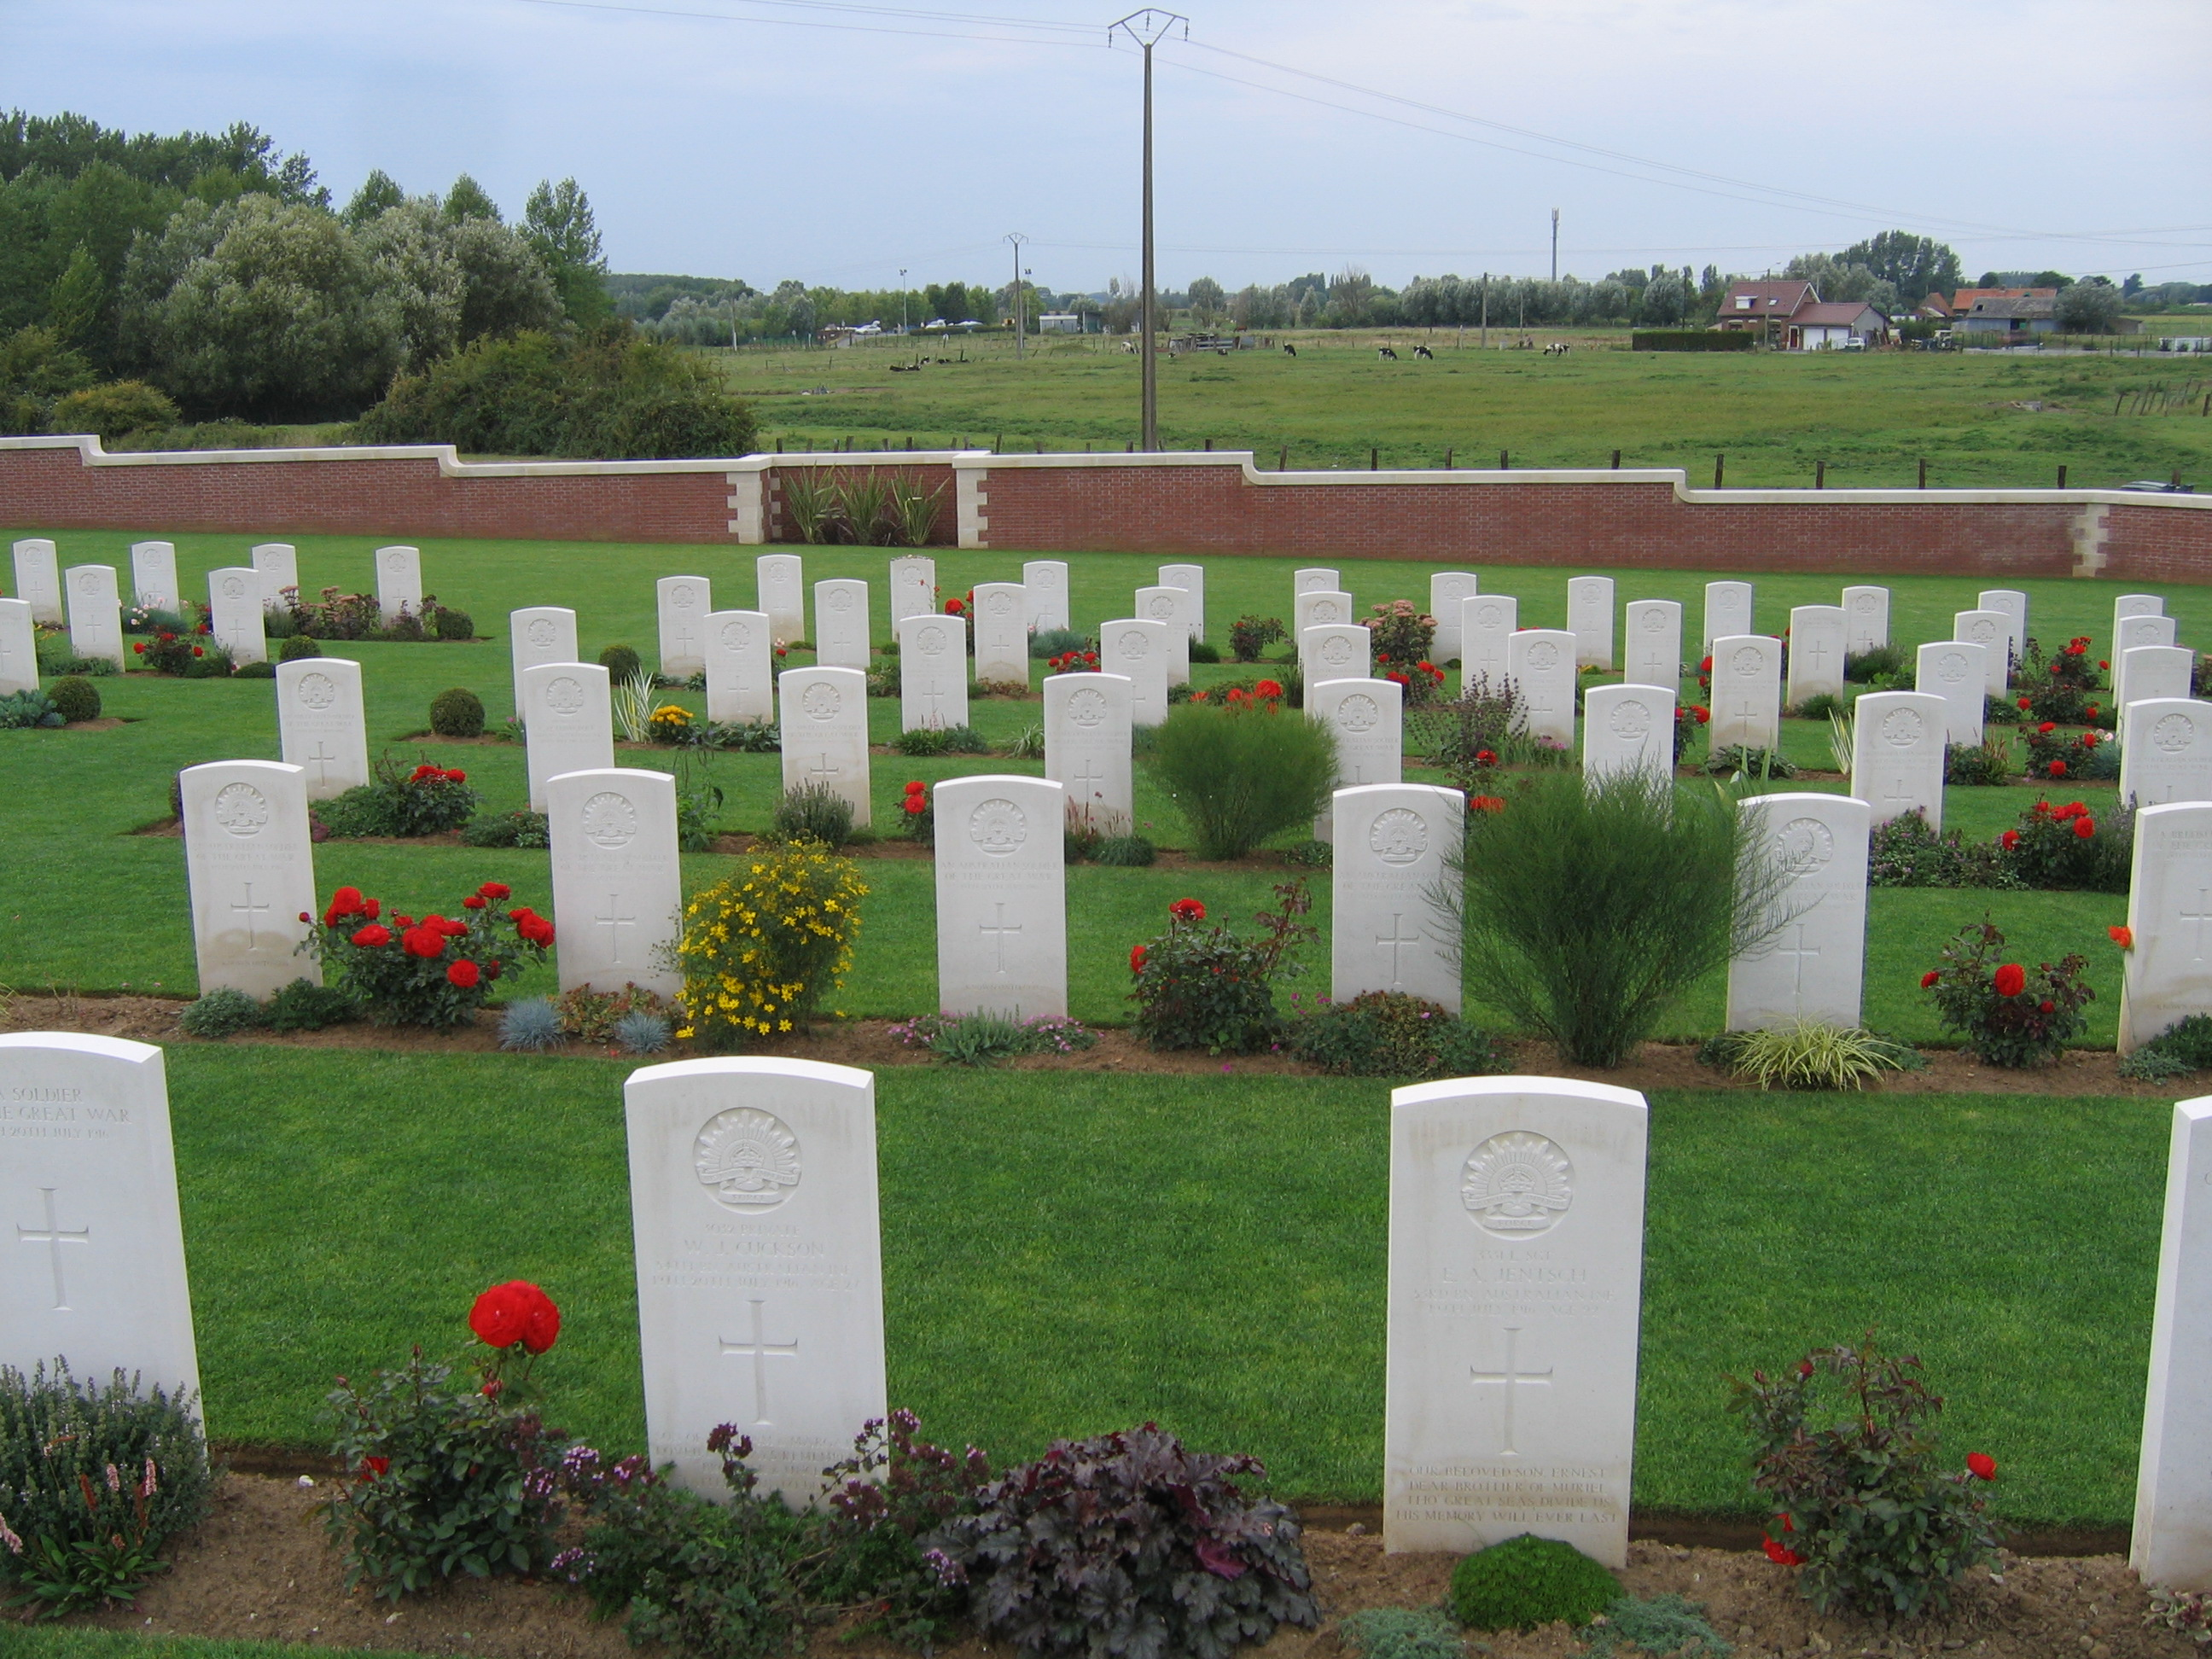 https://upload.wikimedia.org/wikipedia/commons/6/68/Graves_at_Fromelles_(Pheasant_Wood)_Miltary_Cemetery.JPG